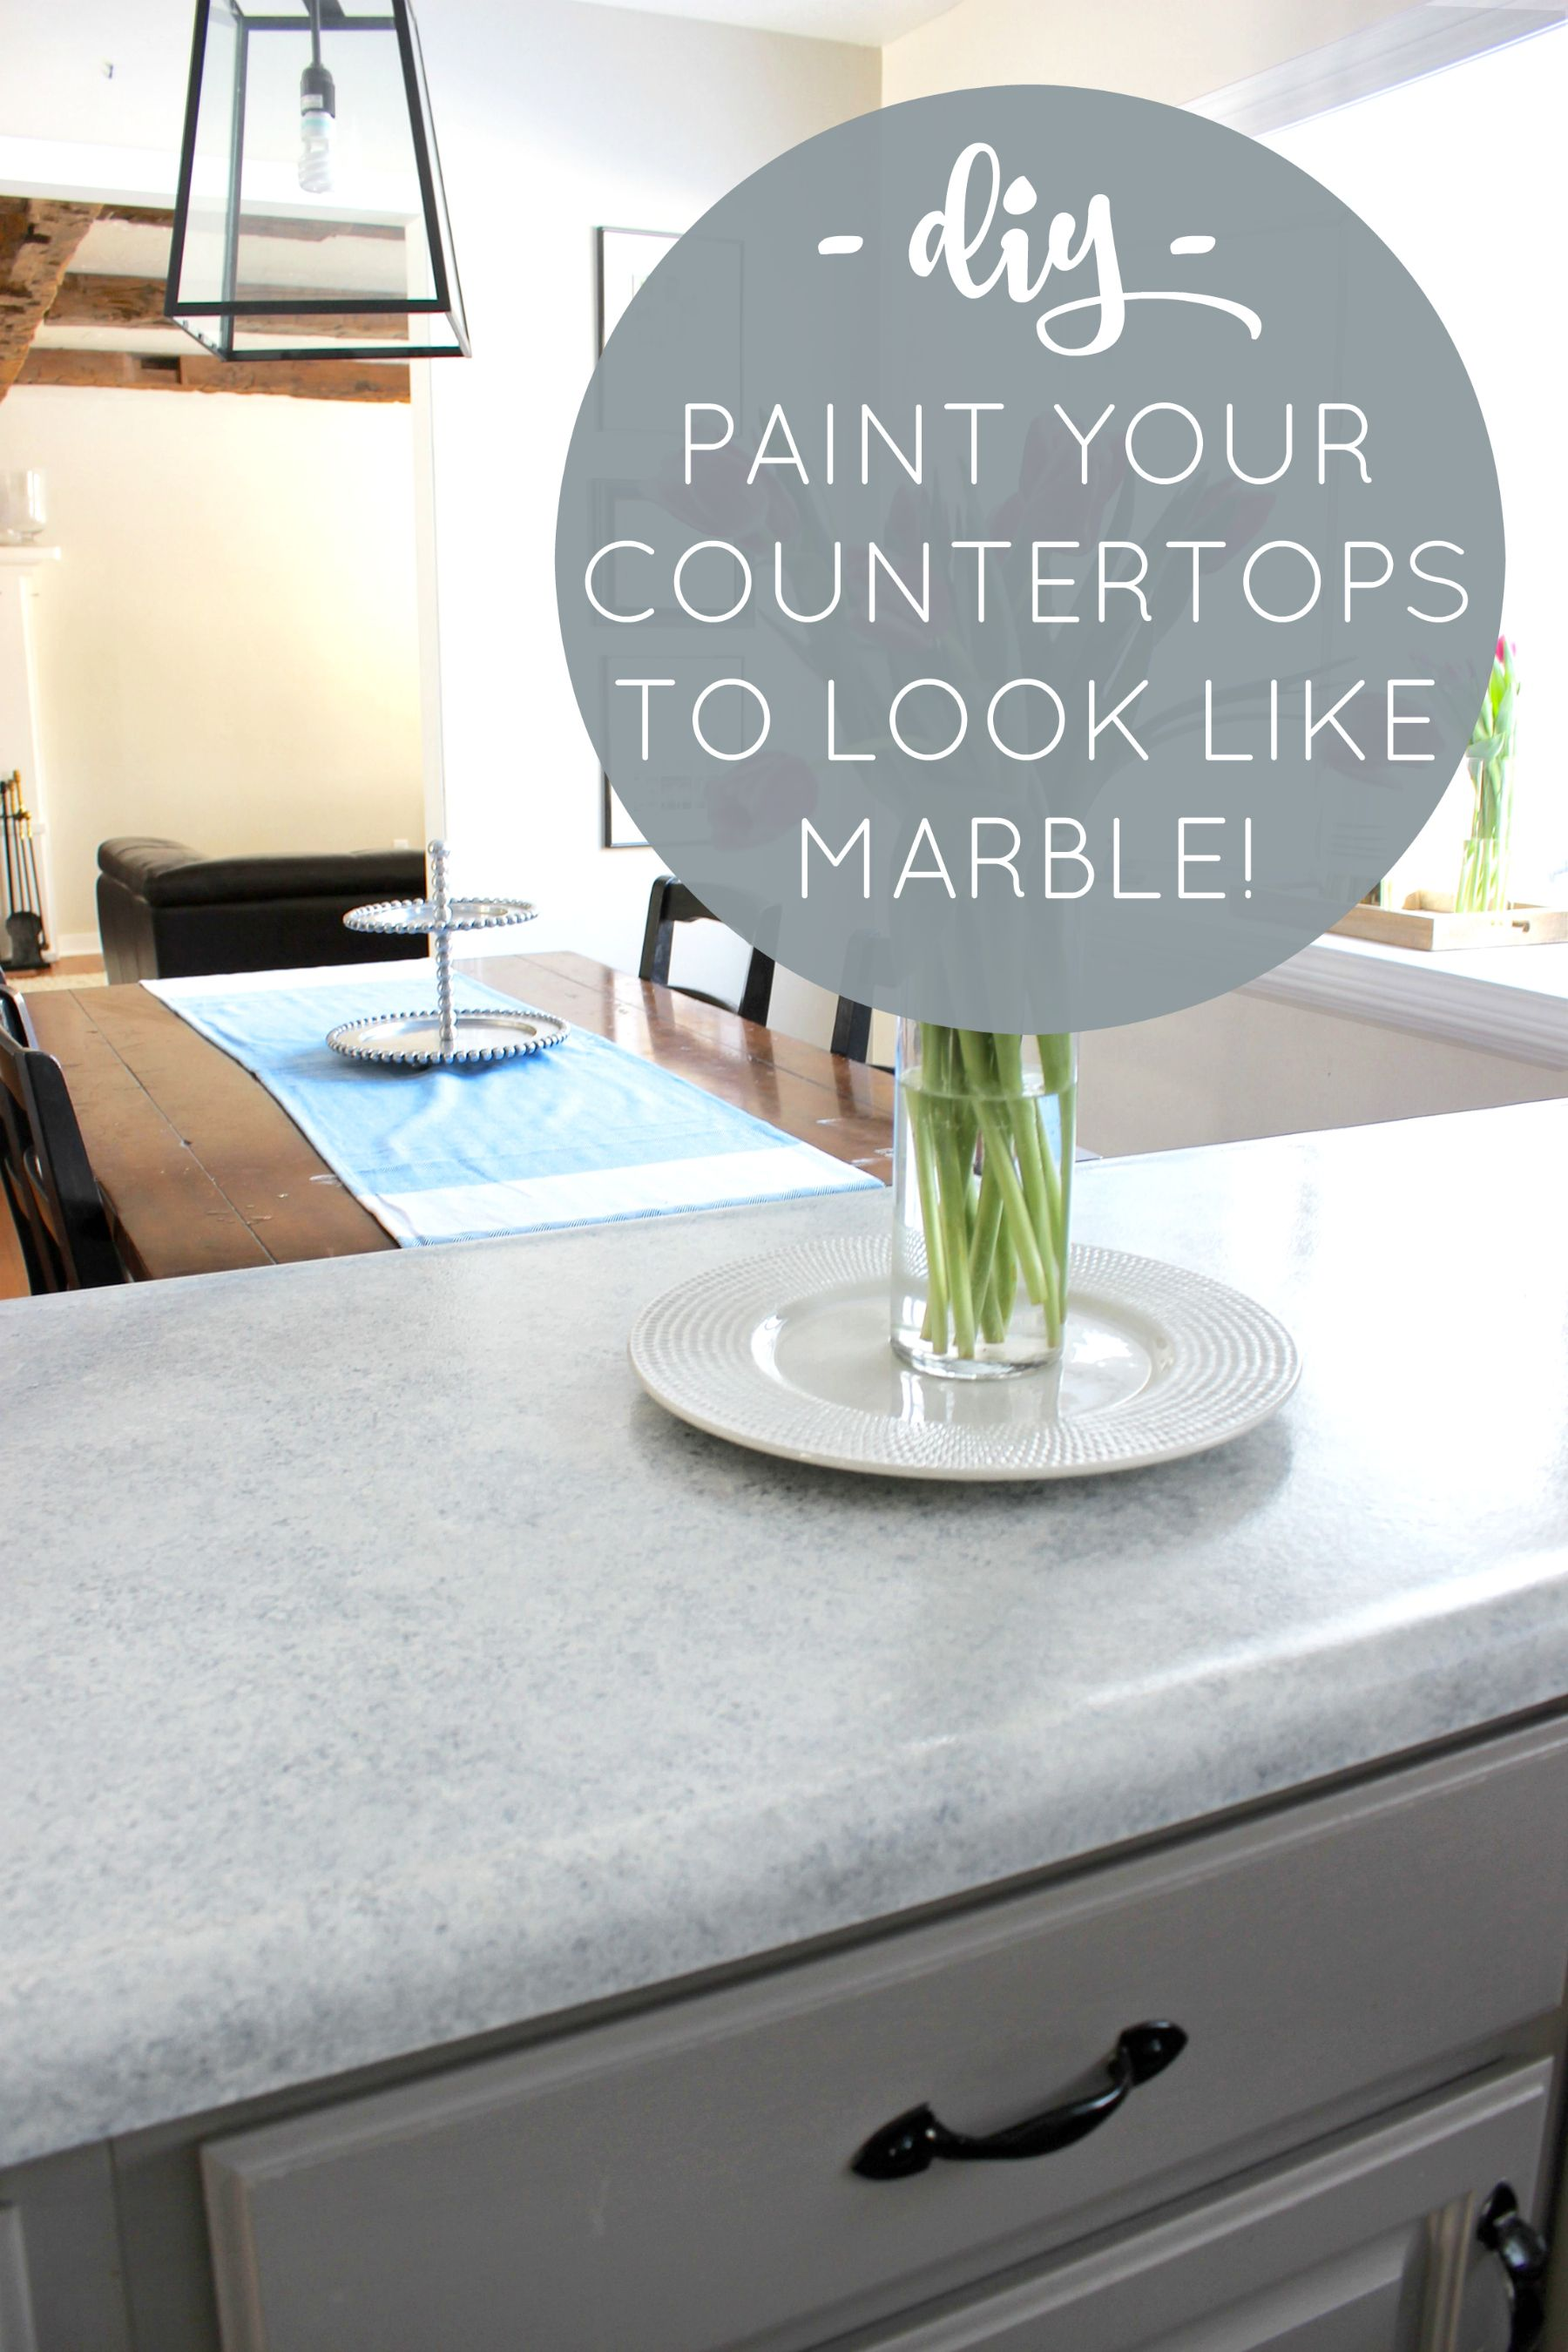 DIY Marble Countertops: From outdated laminate to beautiful \'Marble ...